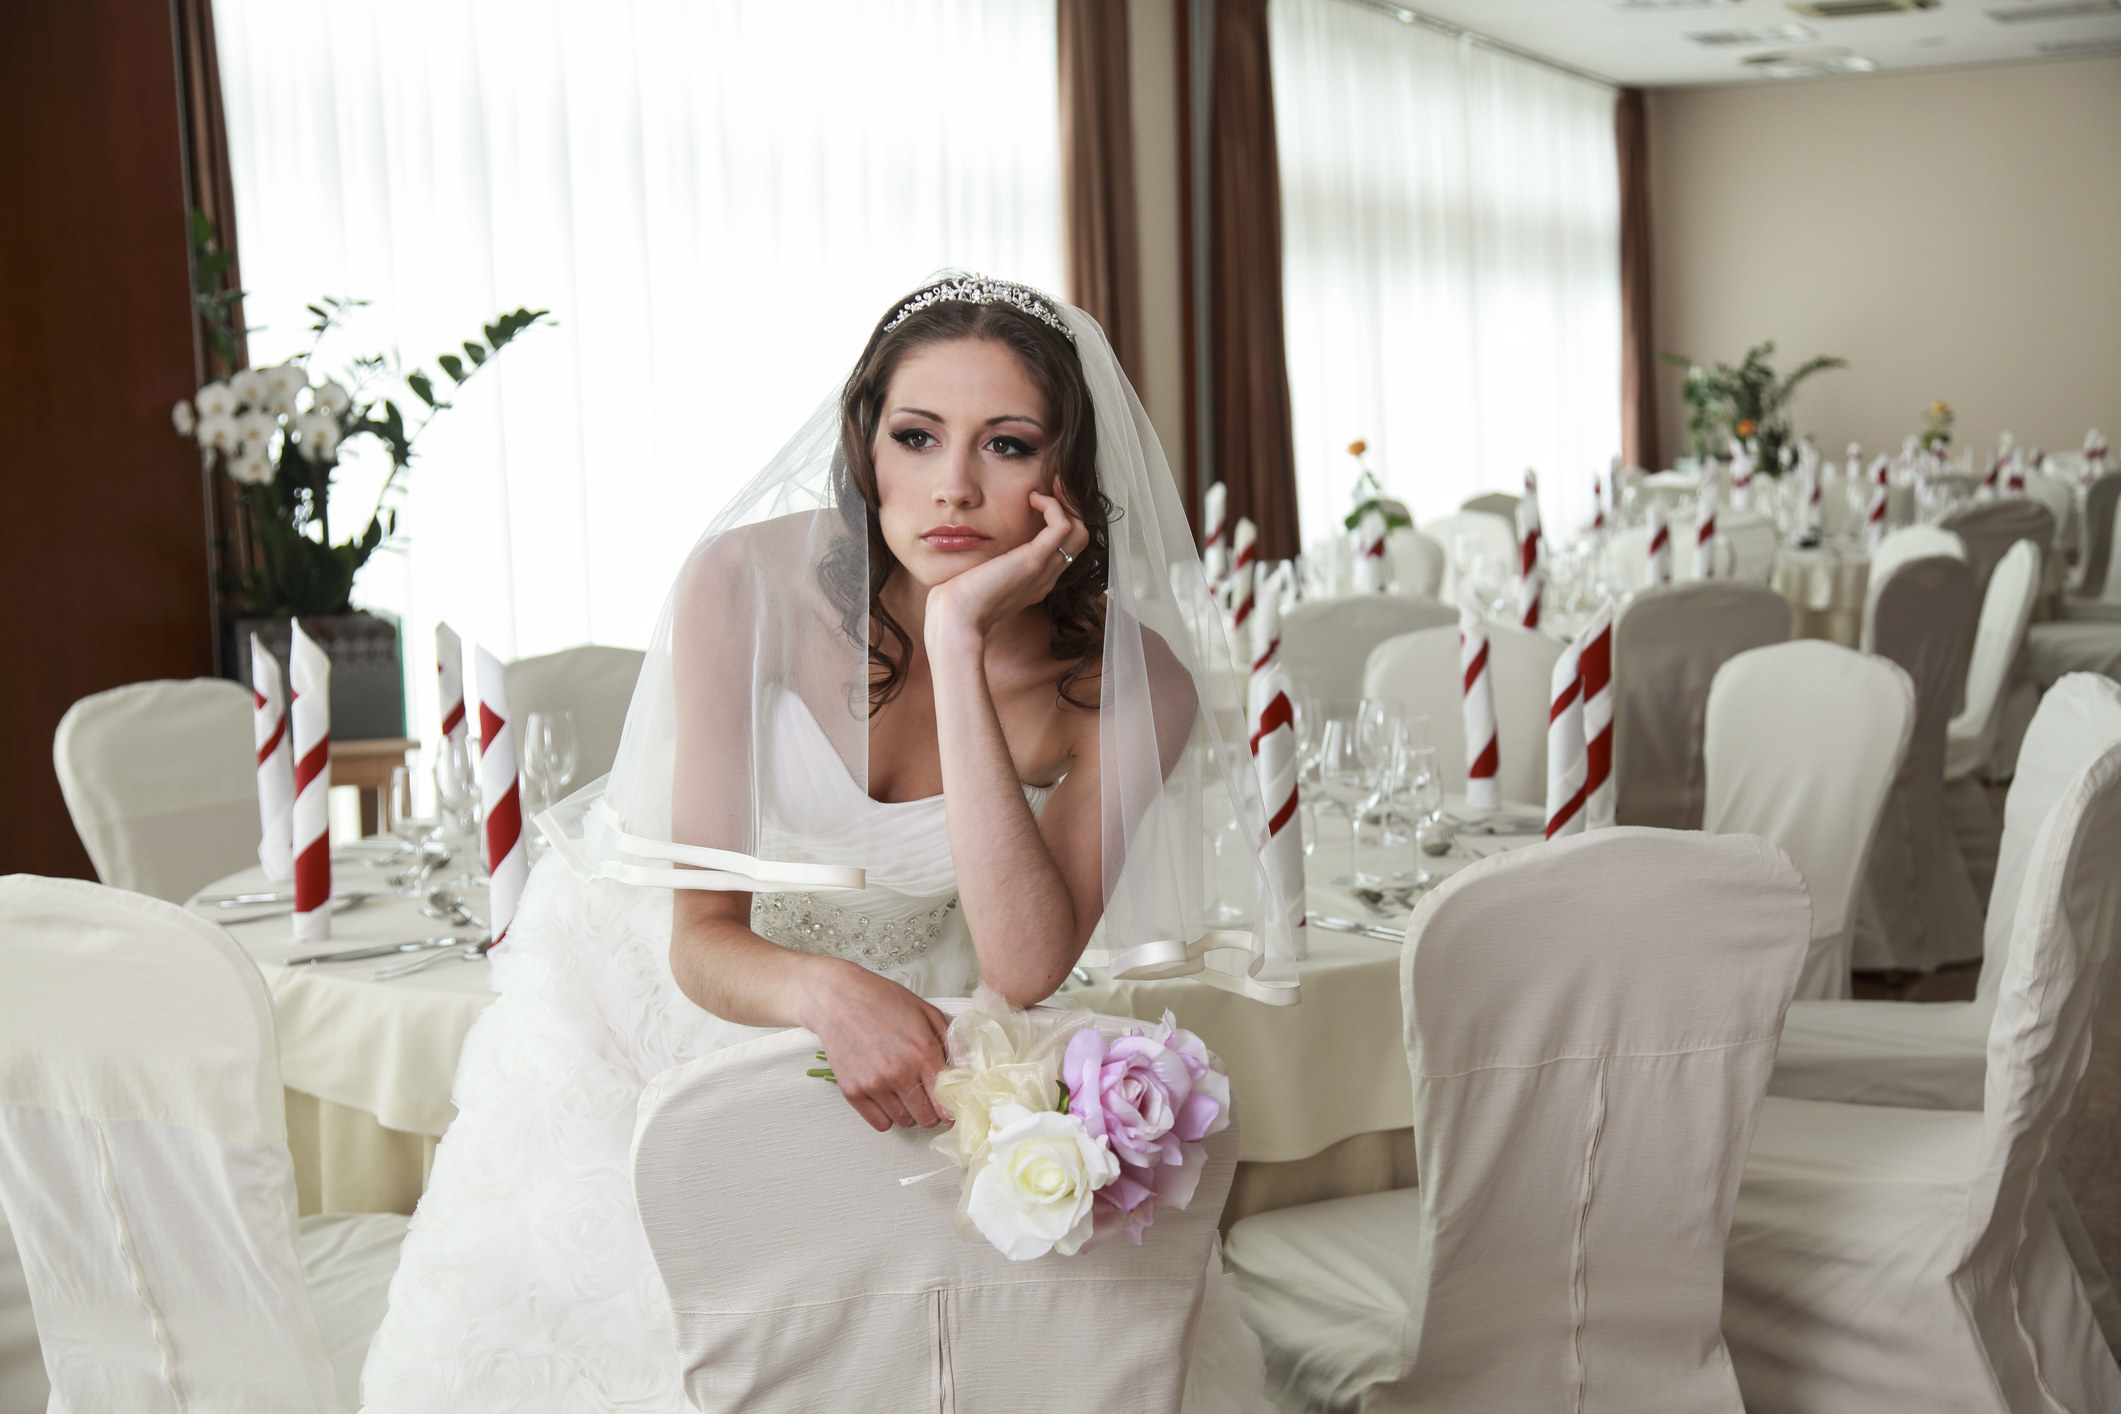 A disappointed bride sits alone at her wedding